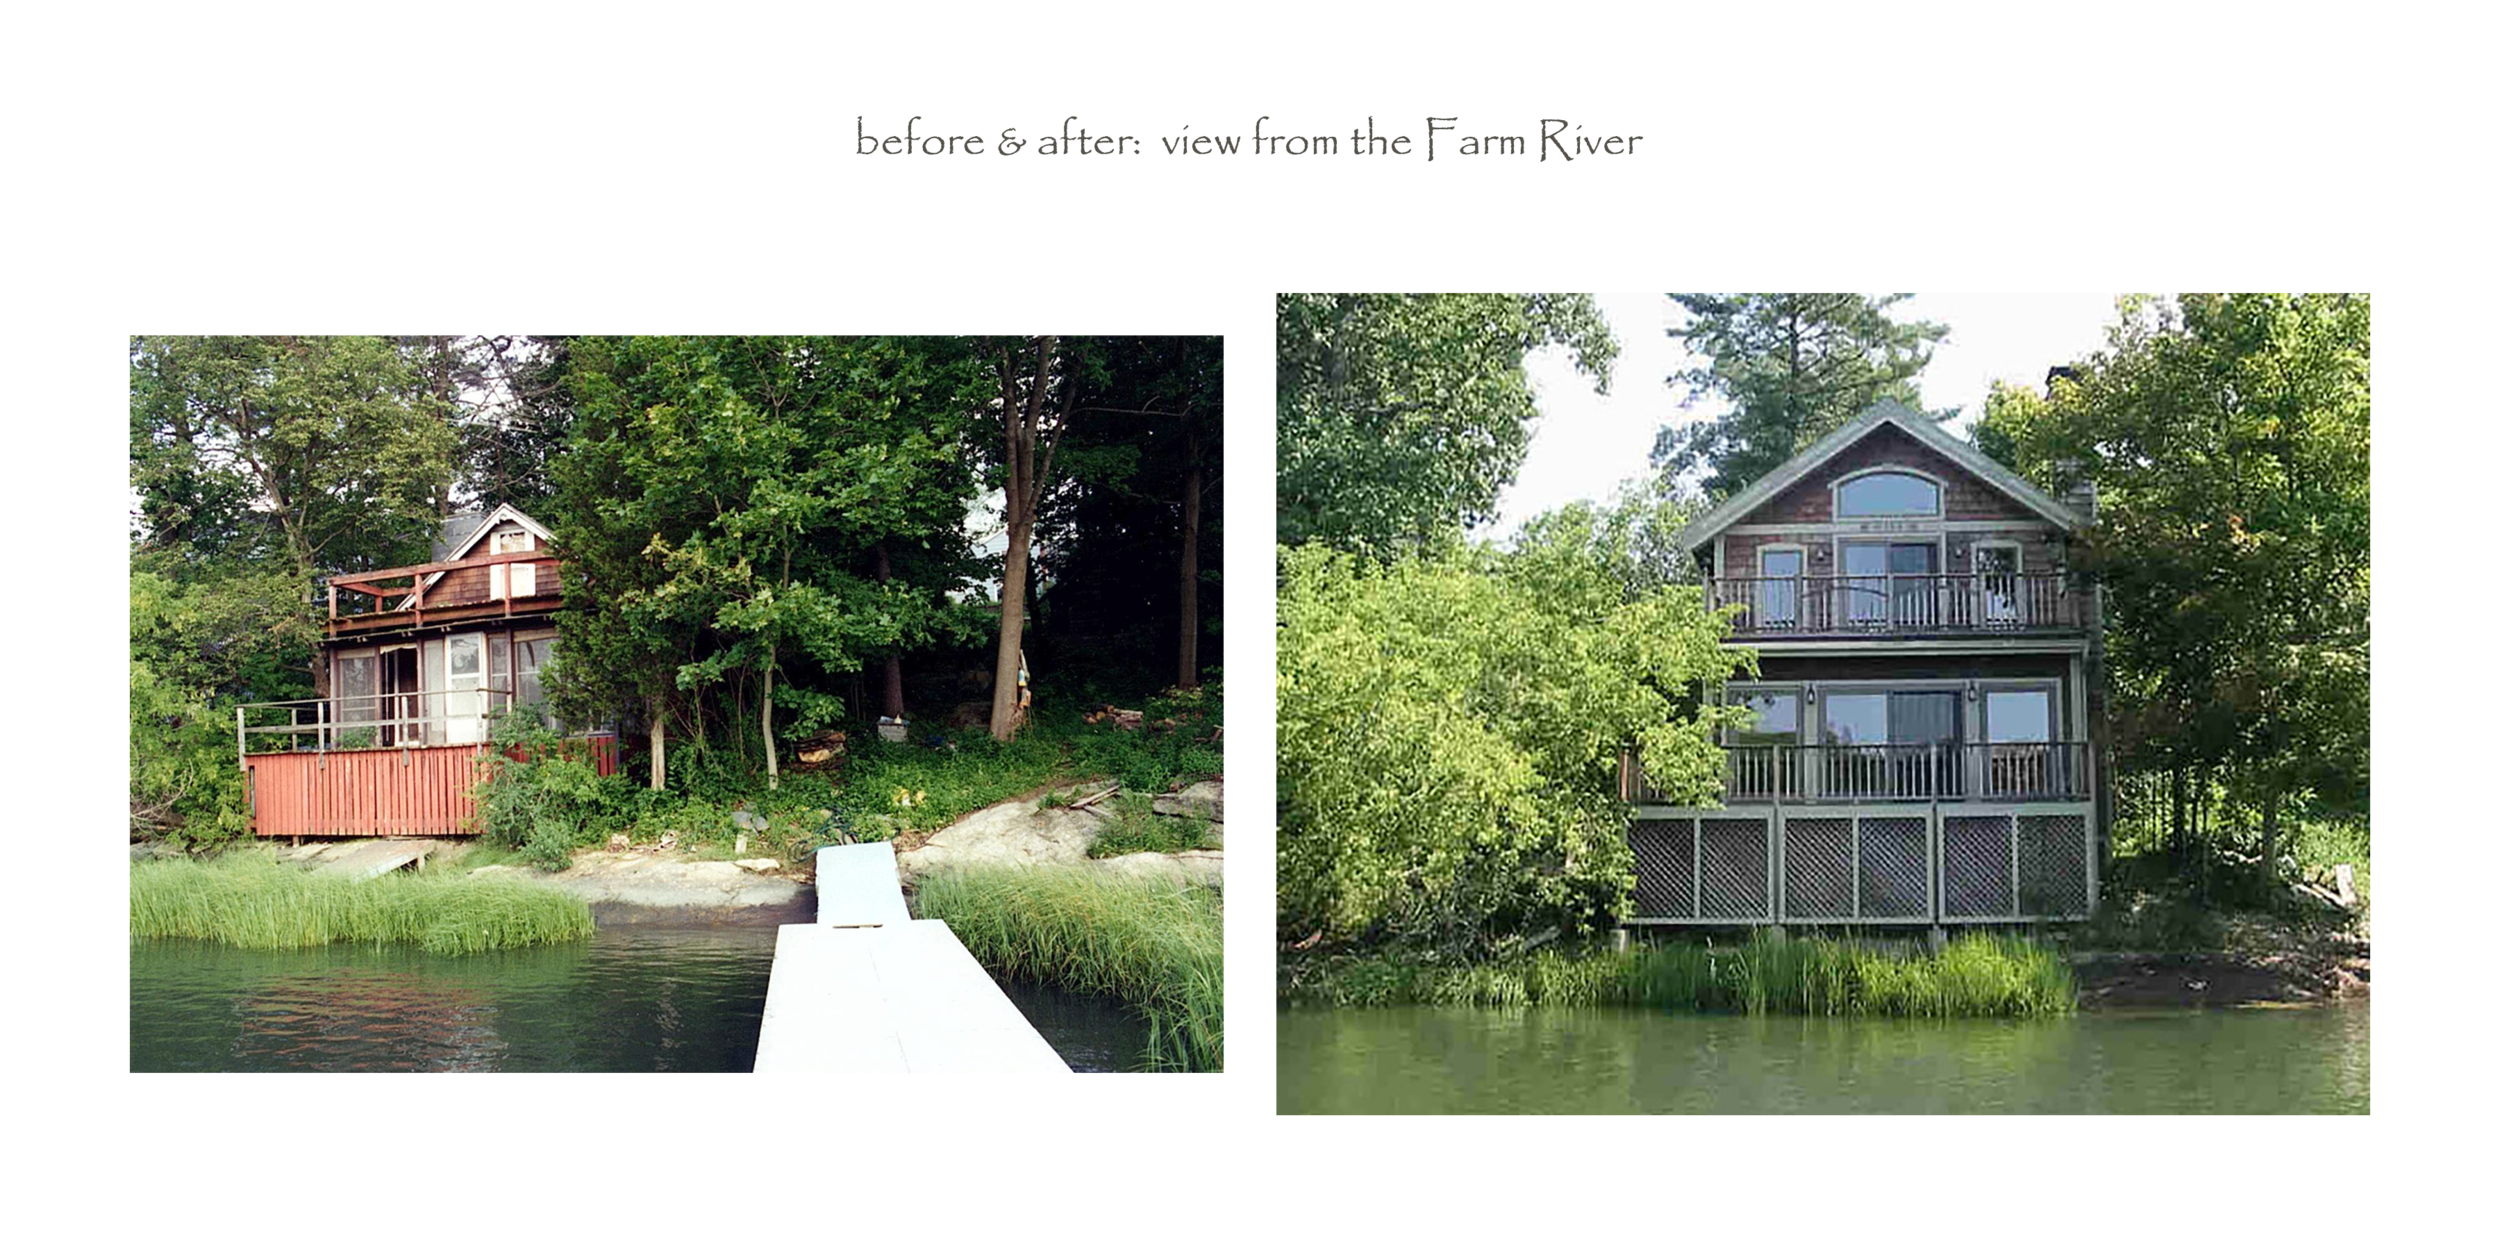 before & after (view from river)